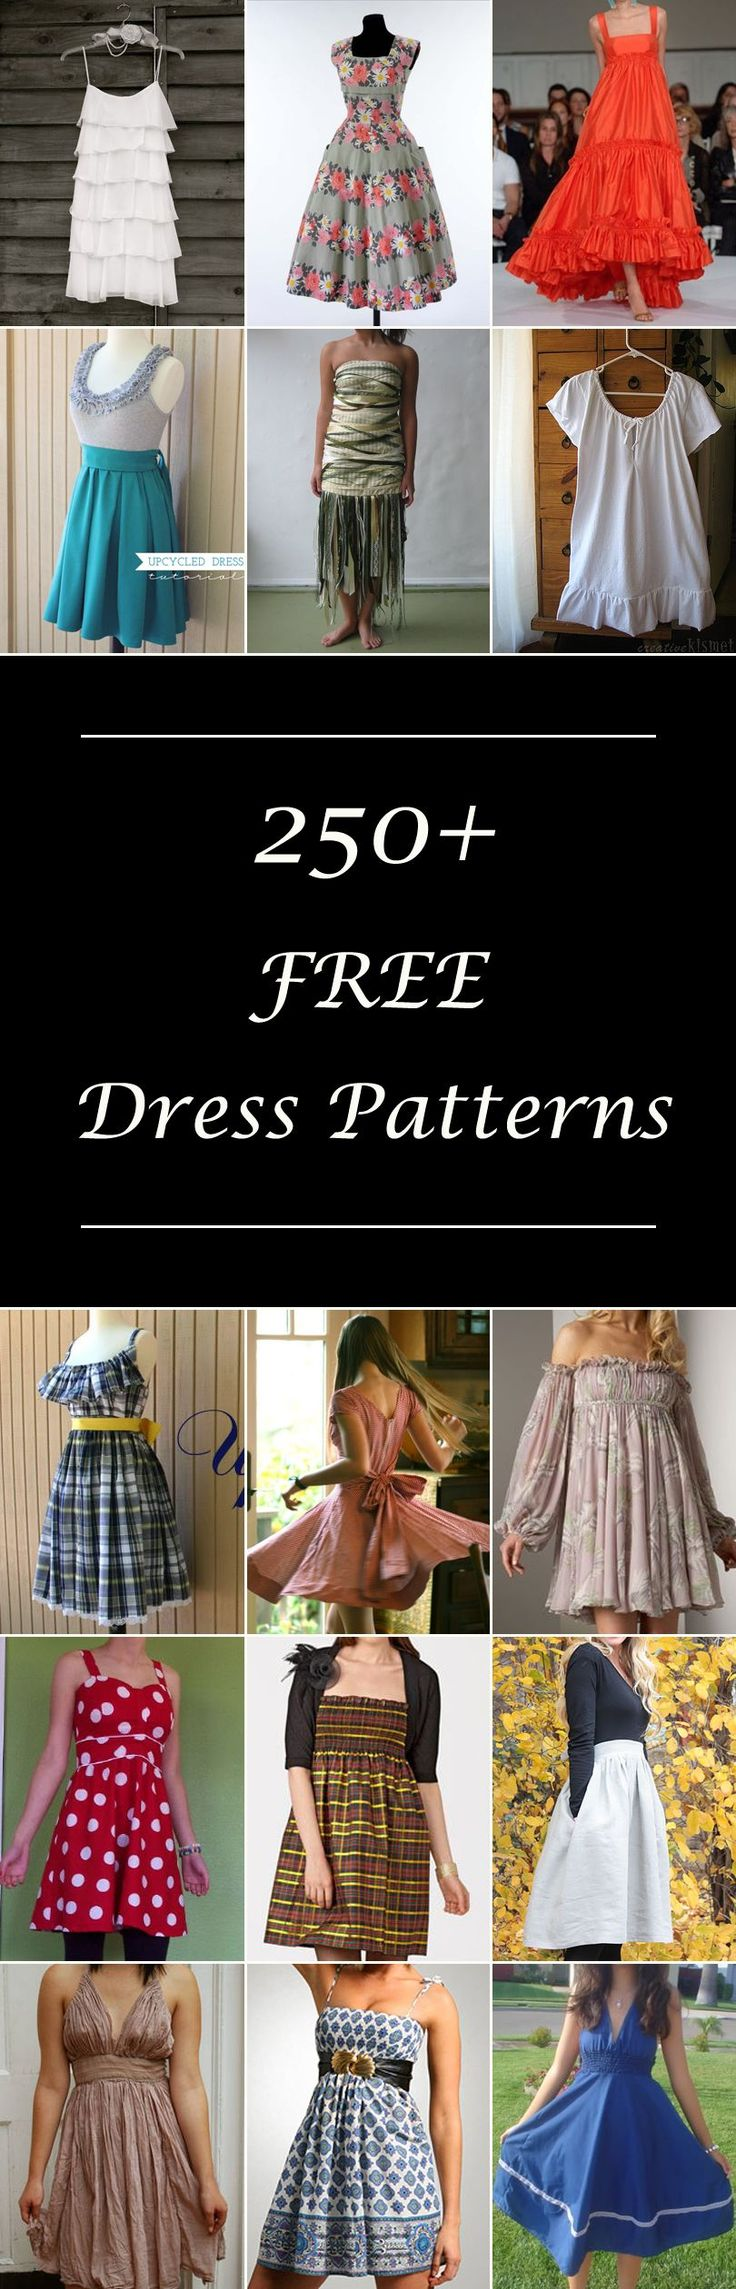 Lots of free women's dress patterns. Diy dress ideas, sewing tutorials & projects for women. Many simple & easy styles. Casual and formal.